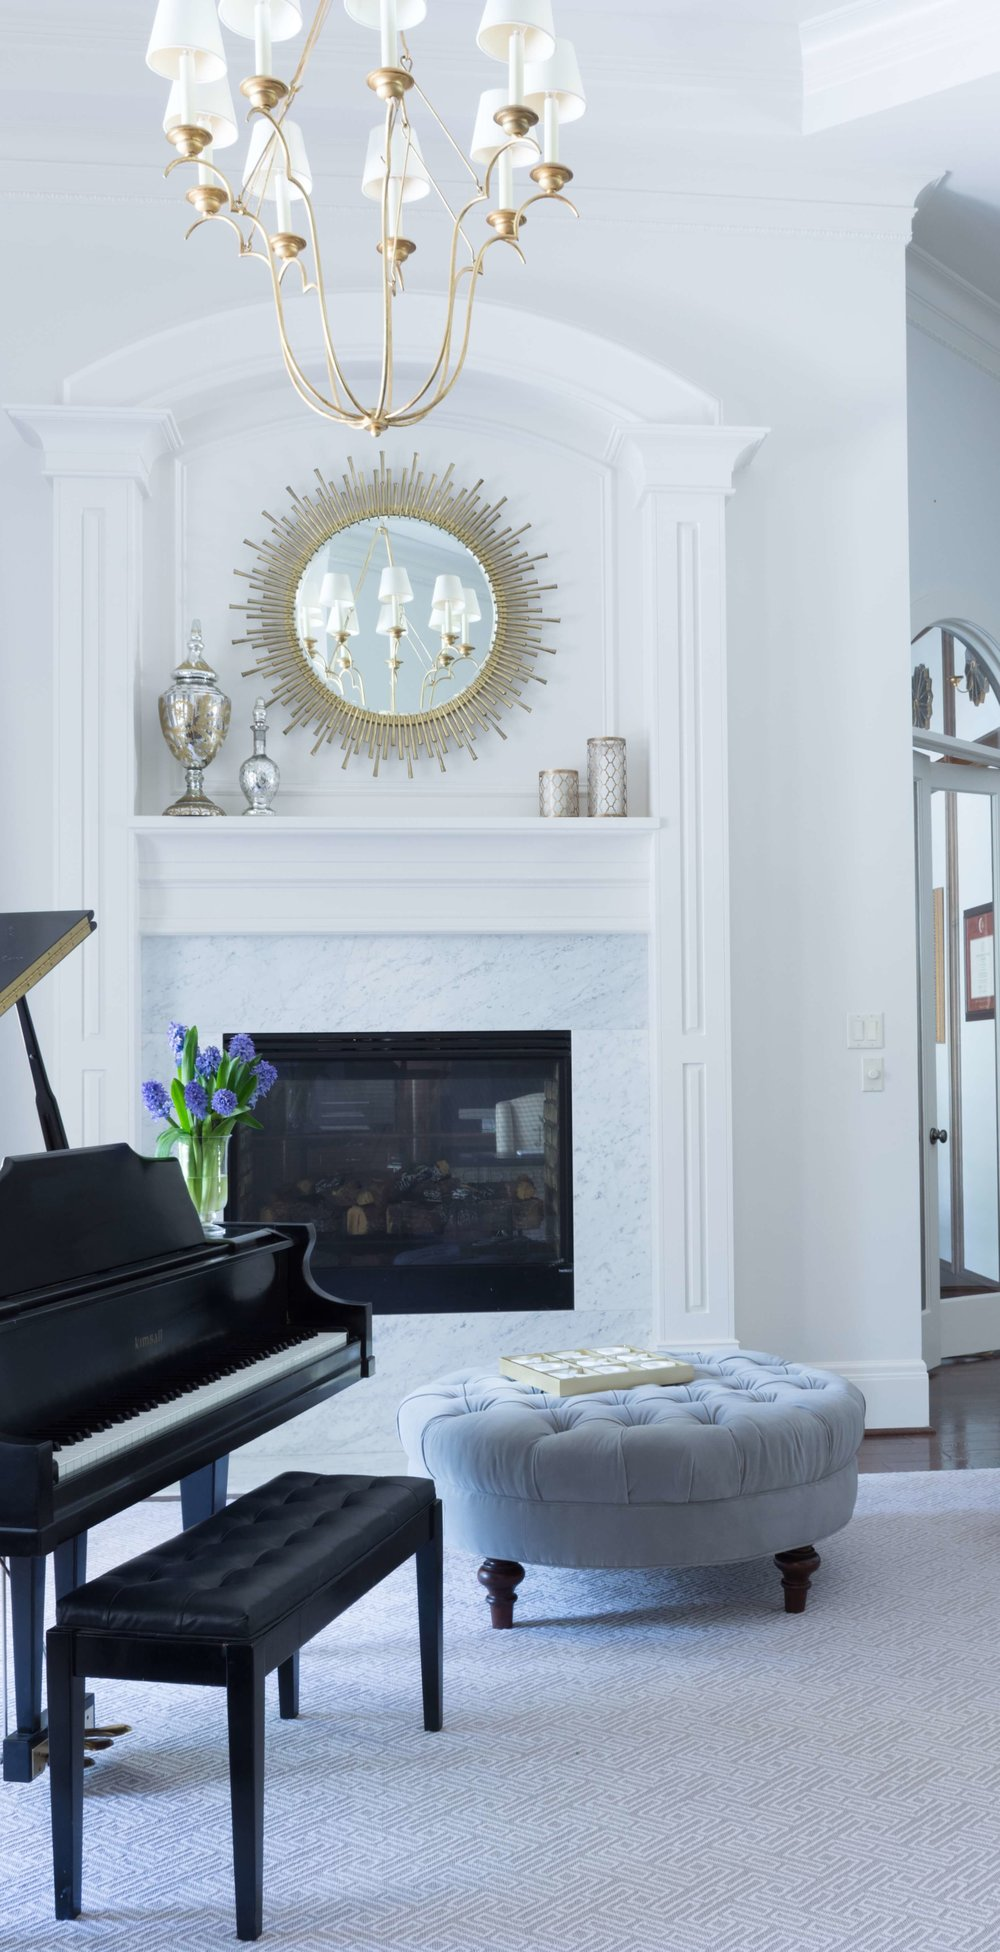 Making a formal living room a little more child-friendly | Formal living room with grand piano, white marble fireplace, gilded mirror and chandelier, Crypton velvet ottoman | Designer: Carla Aston